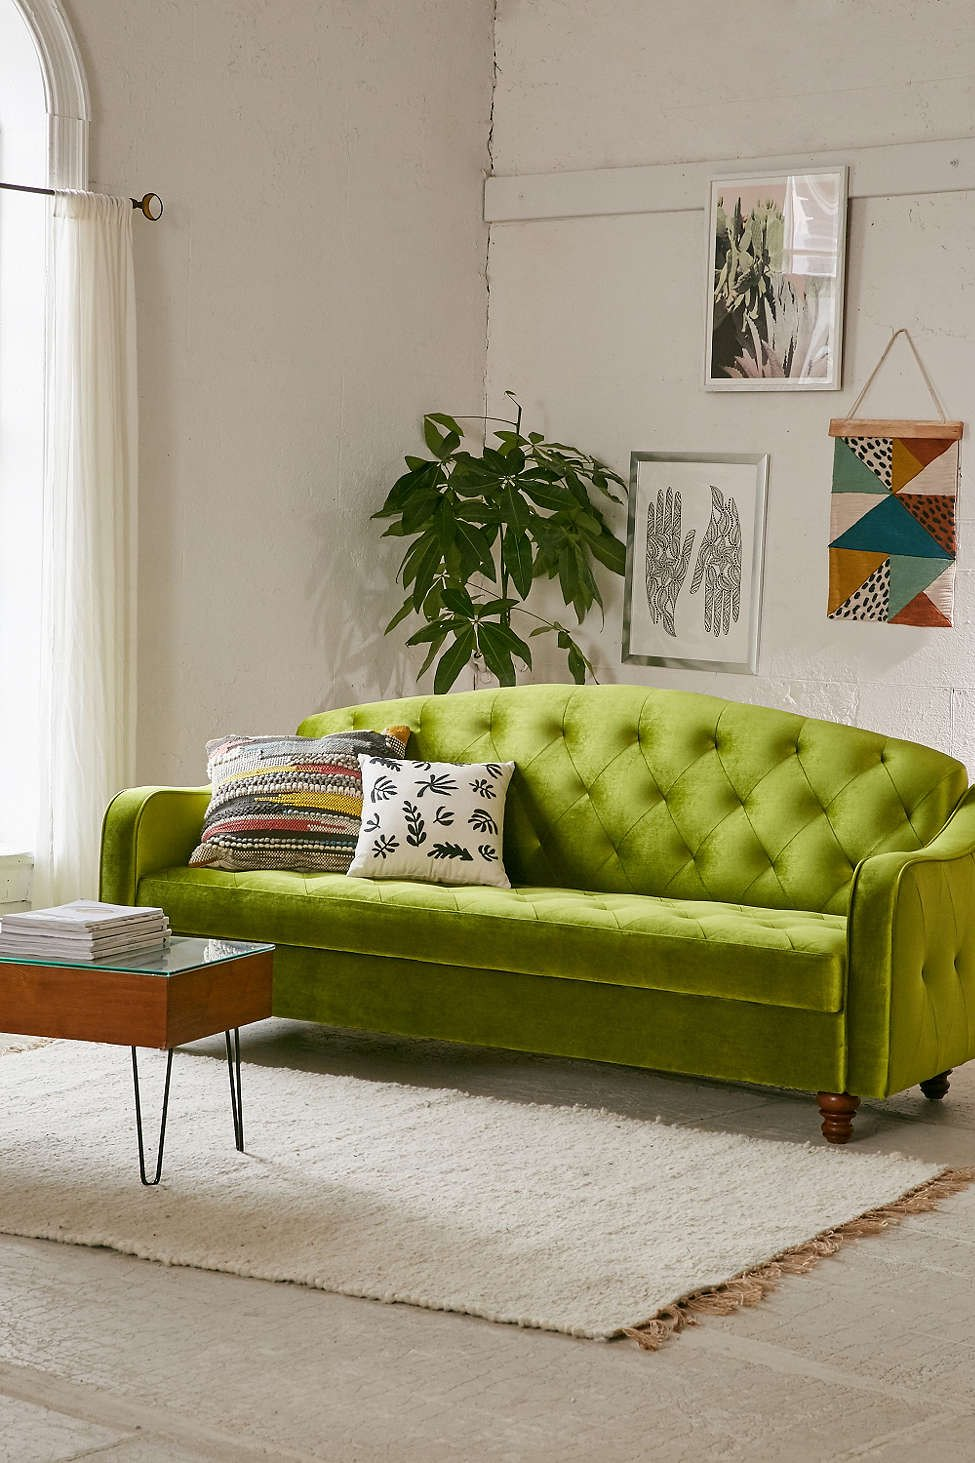 Green sleeper sofa